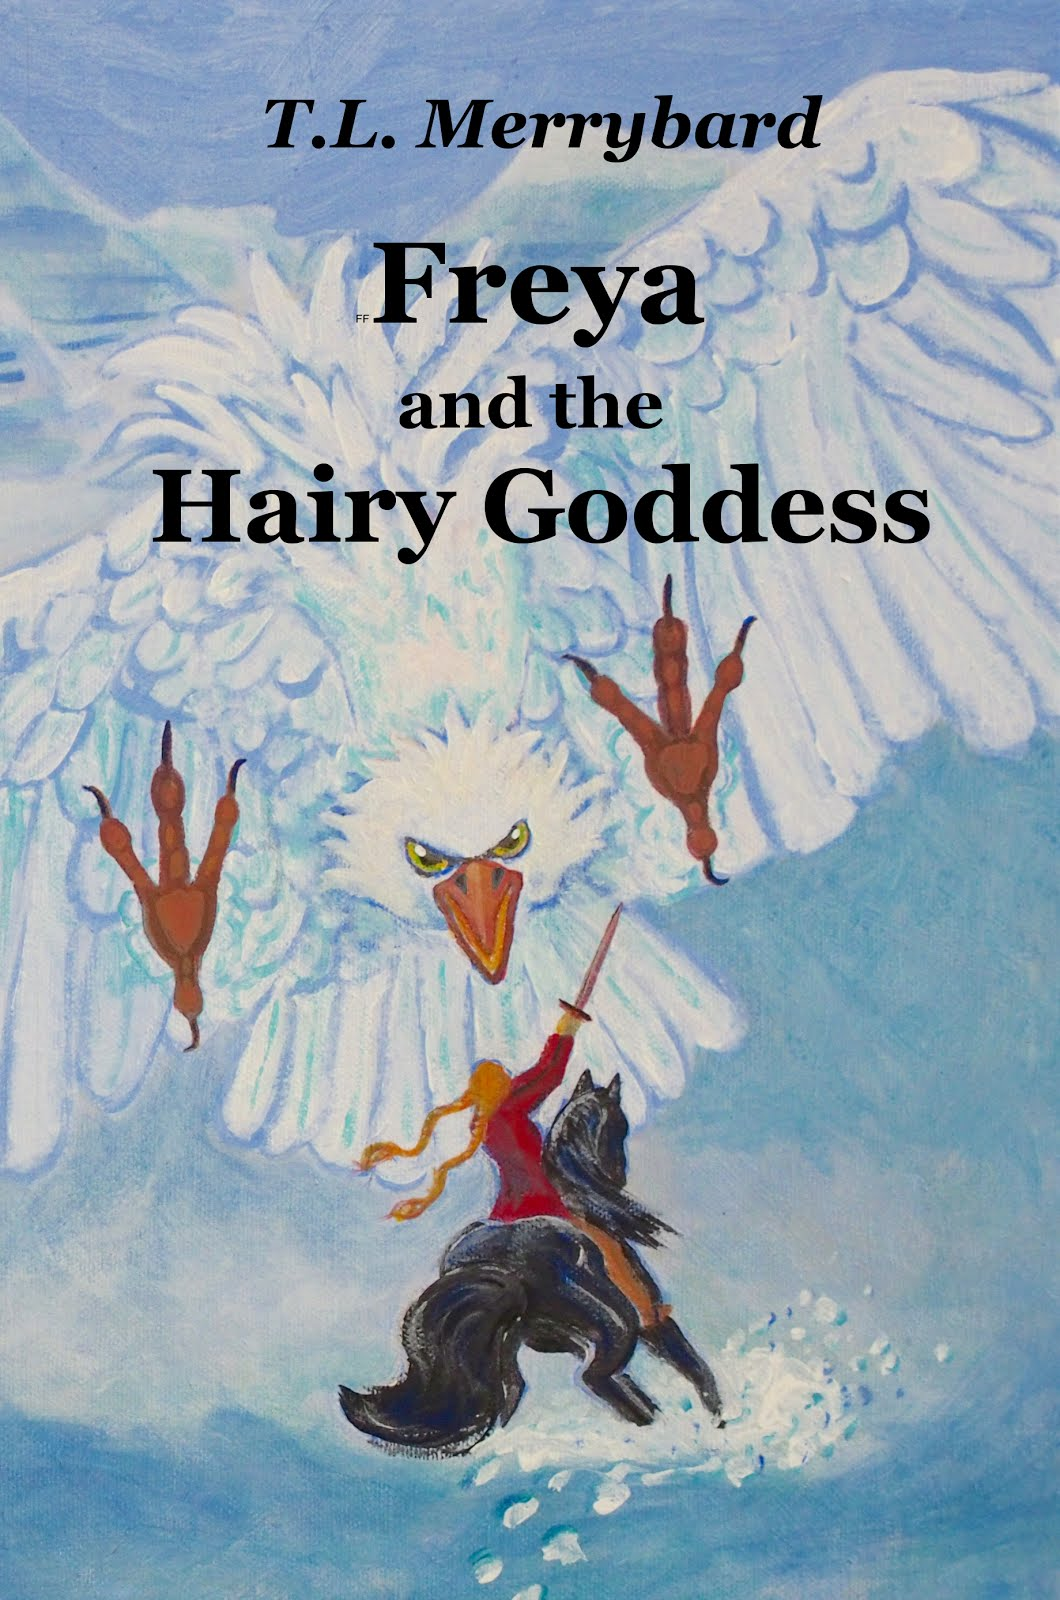 Freya and the Hairy Goddess